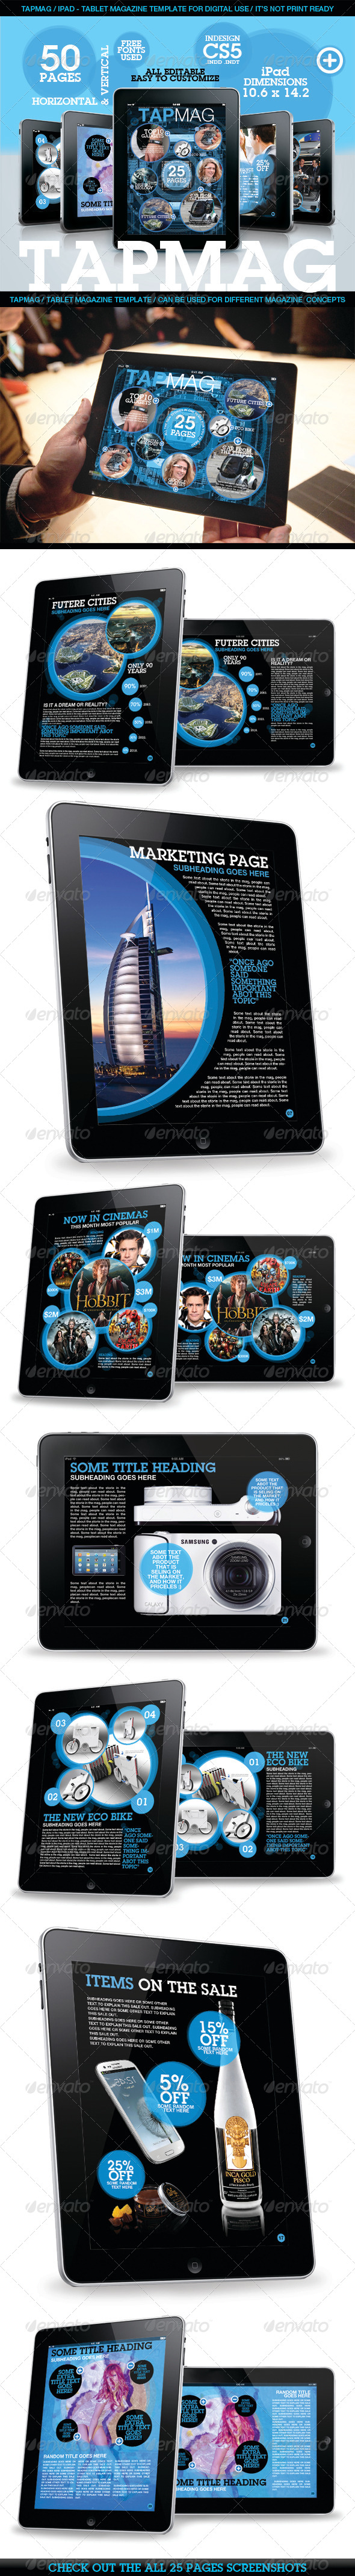 GraphicRiver Tabmag Tablet Magazine Template 4053170